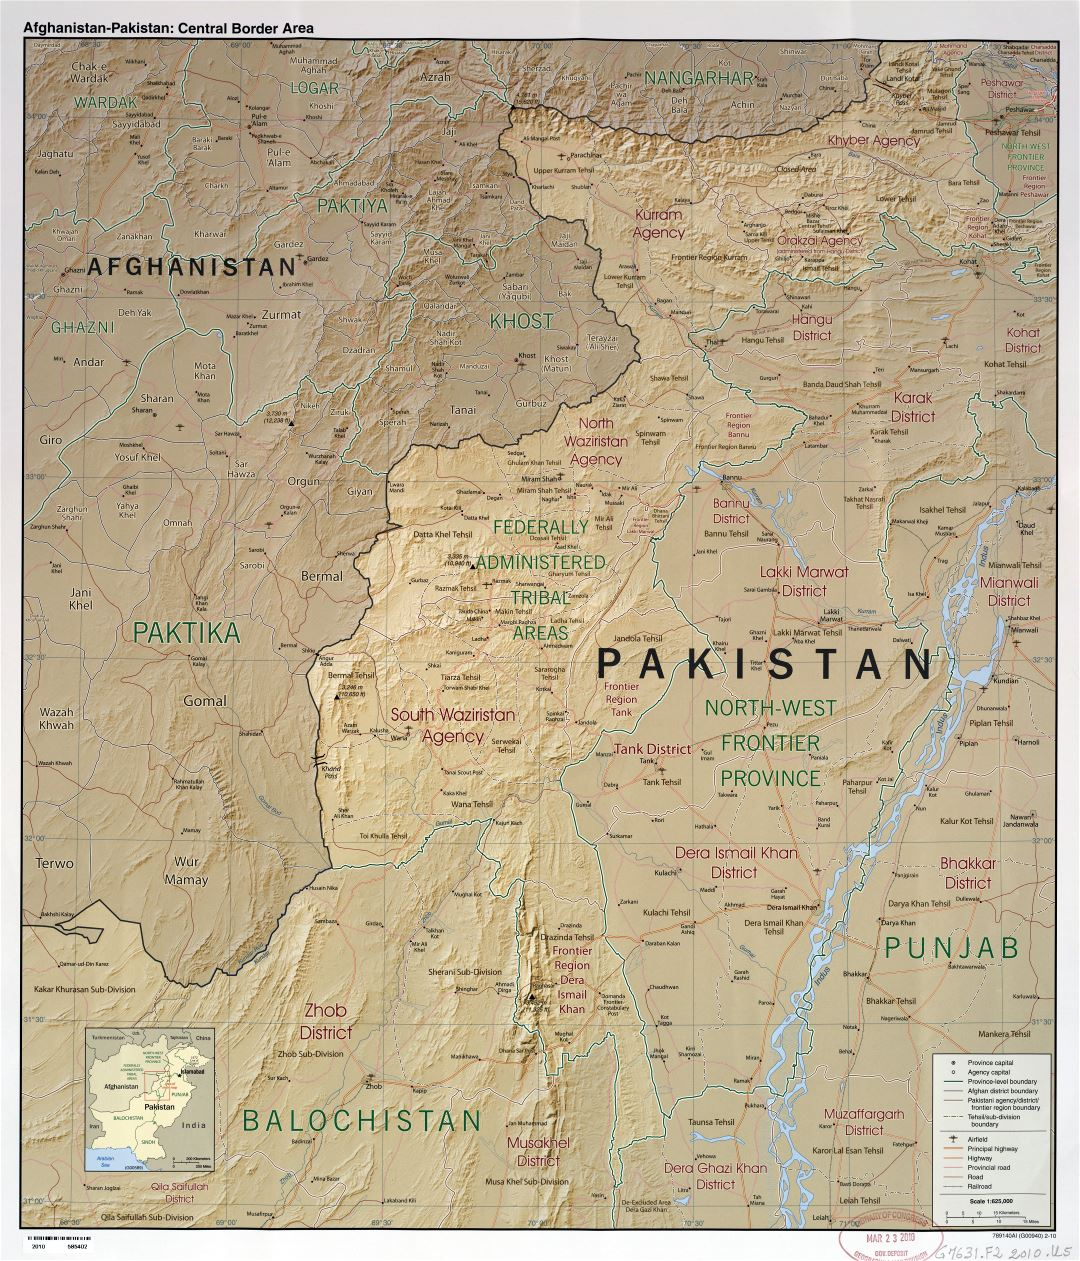 Large scale detailed Afghanistan - Pakistan central border area map with relief, administrative divisions, roads, railroads, airfields and cities - 2010